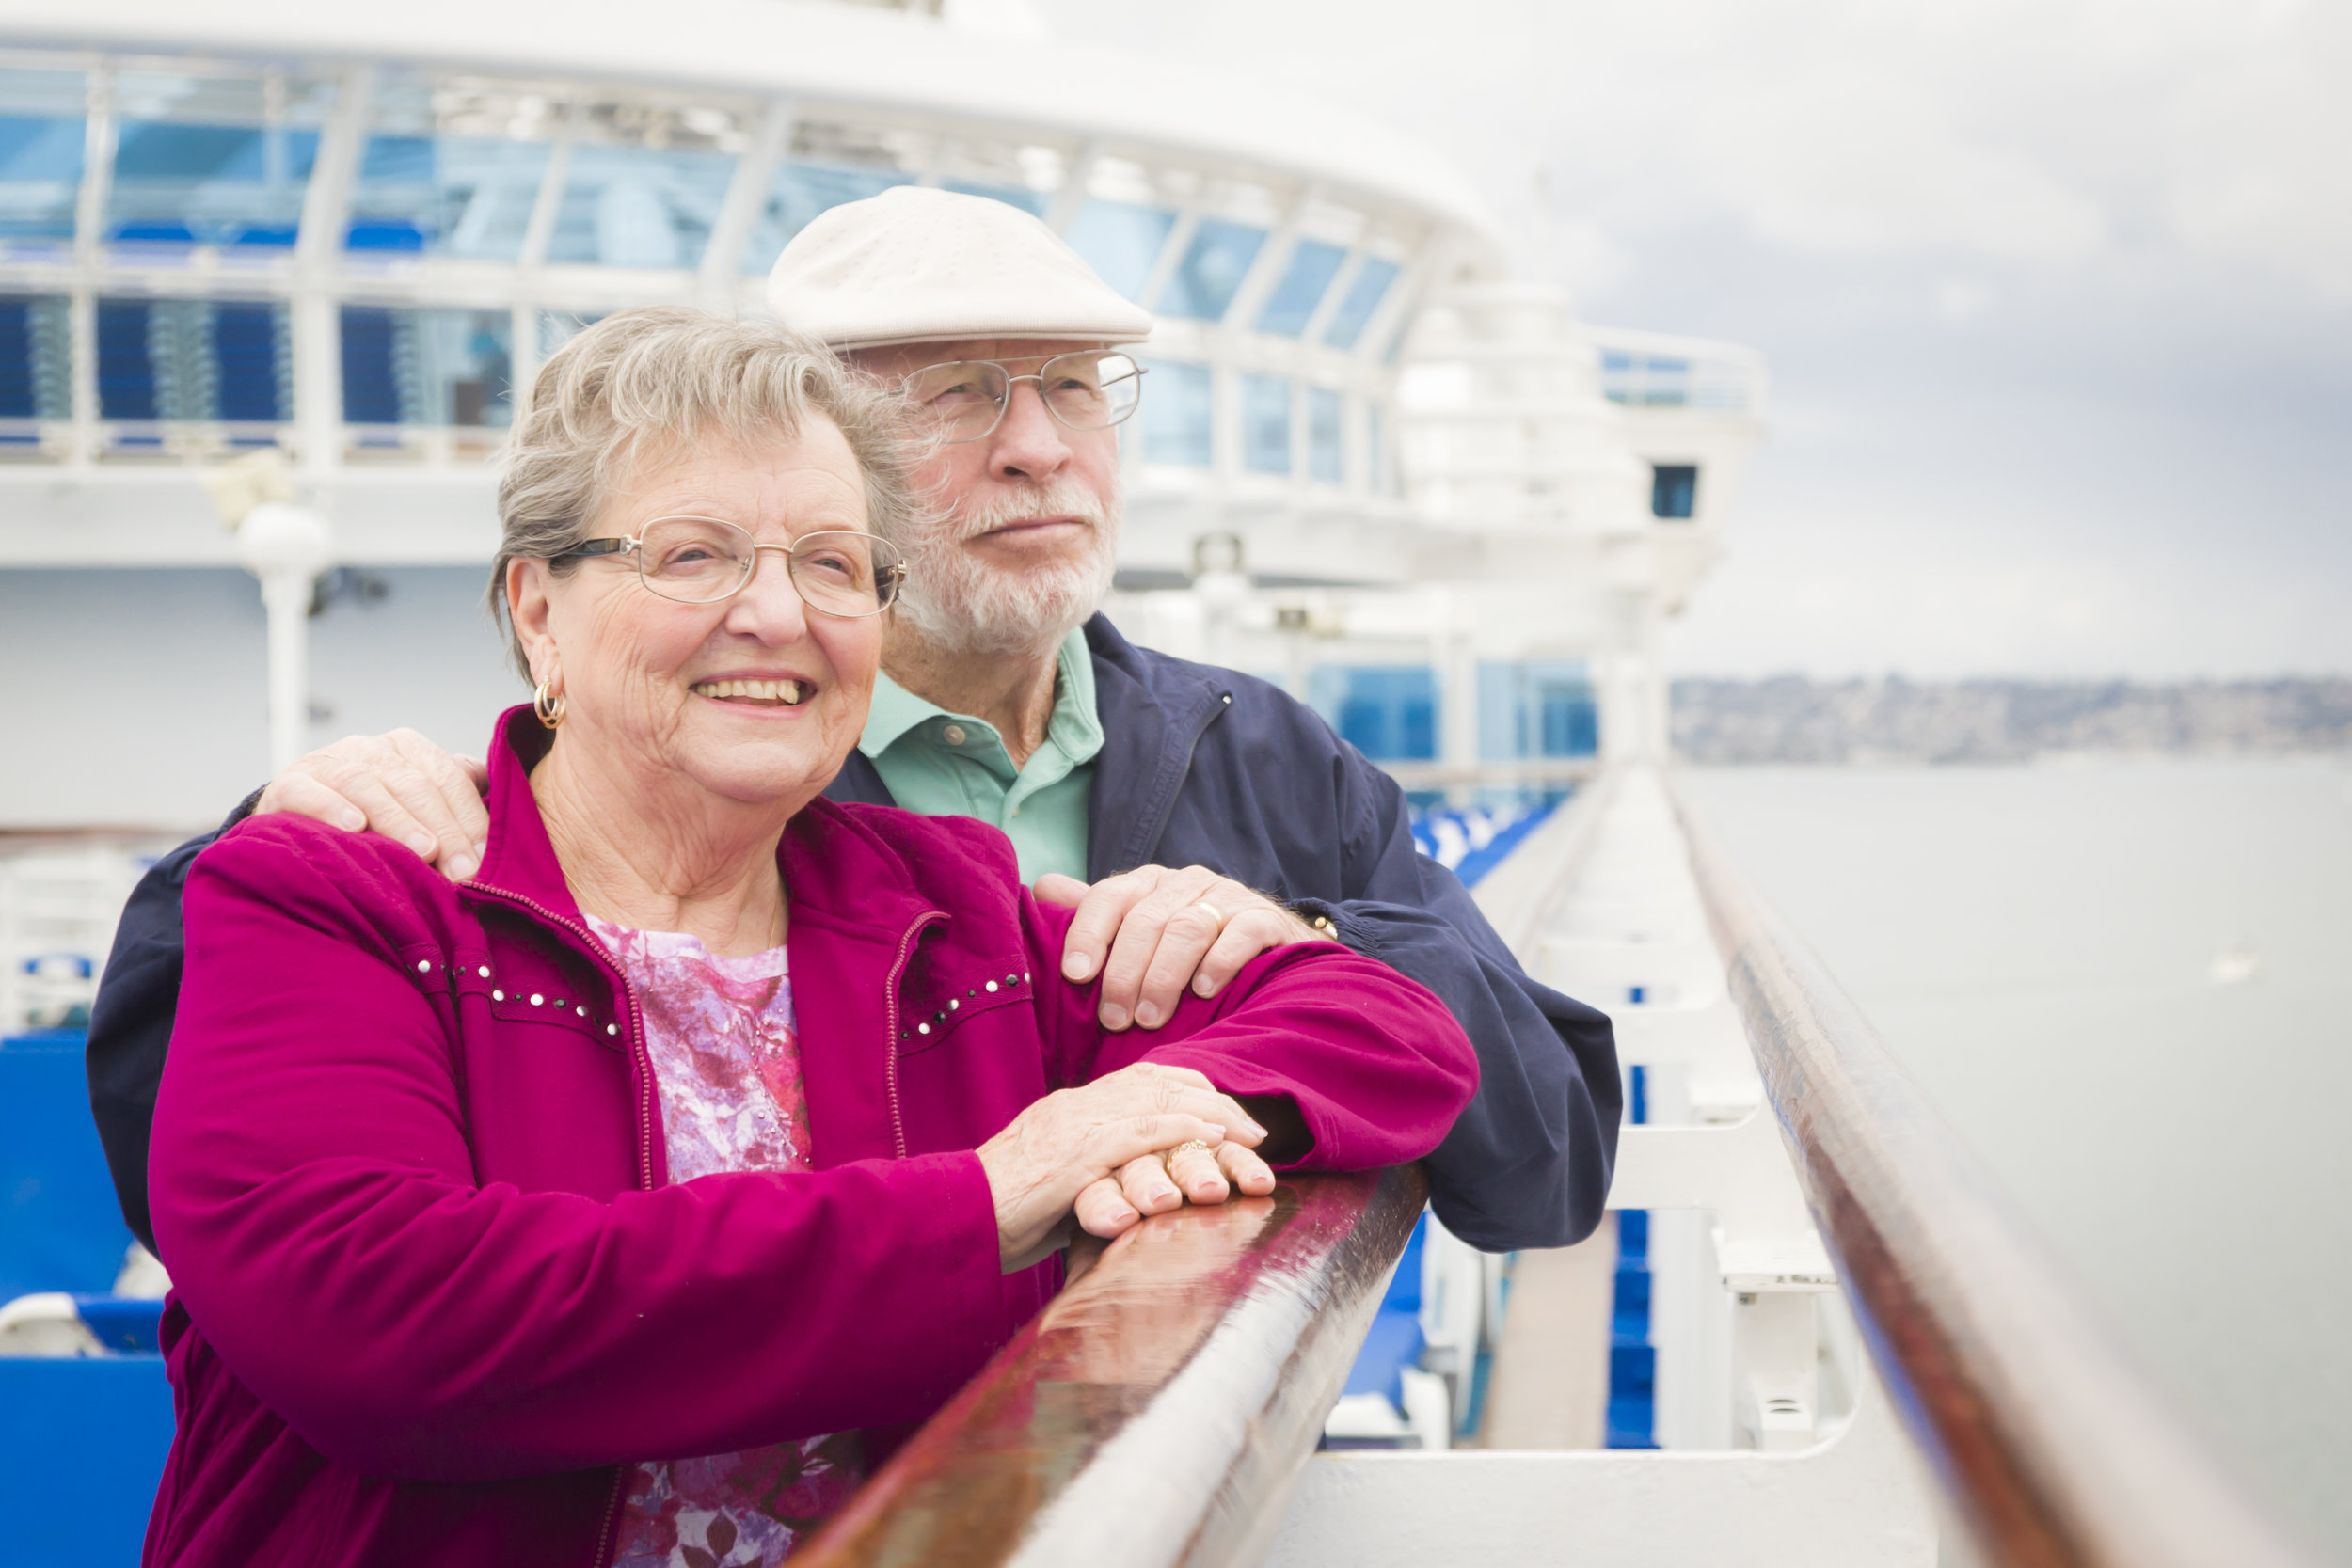 """EquiKey made it possible for us to take the cruise we'd always said we'd go on but never got round to"" - Peter & Diane H."